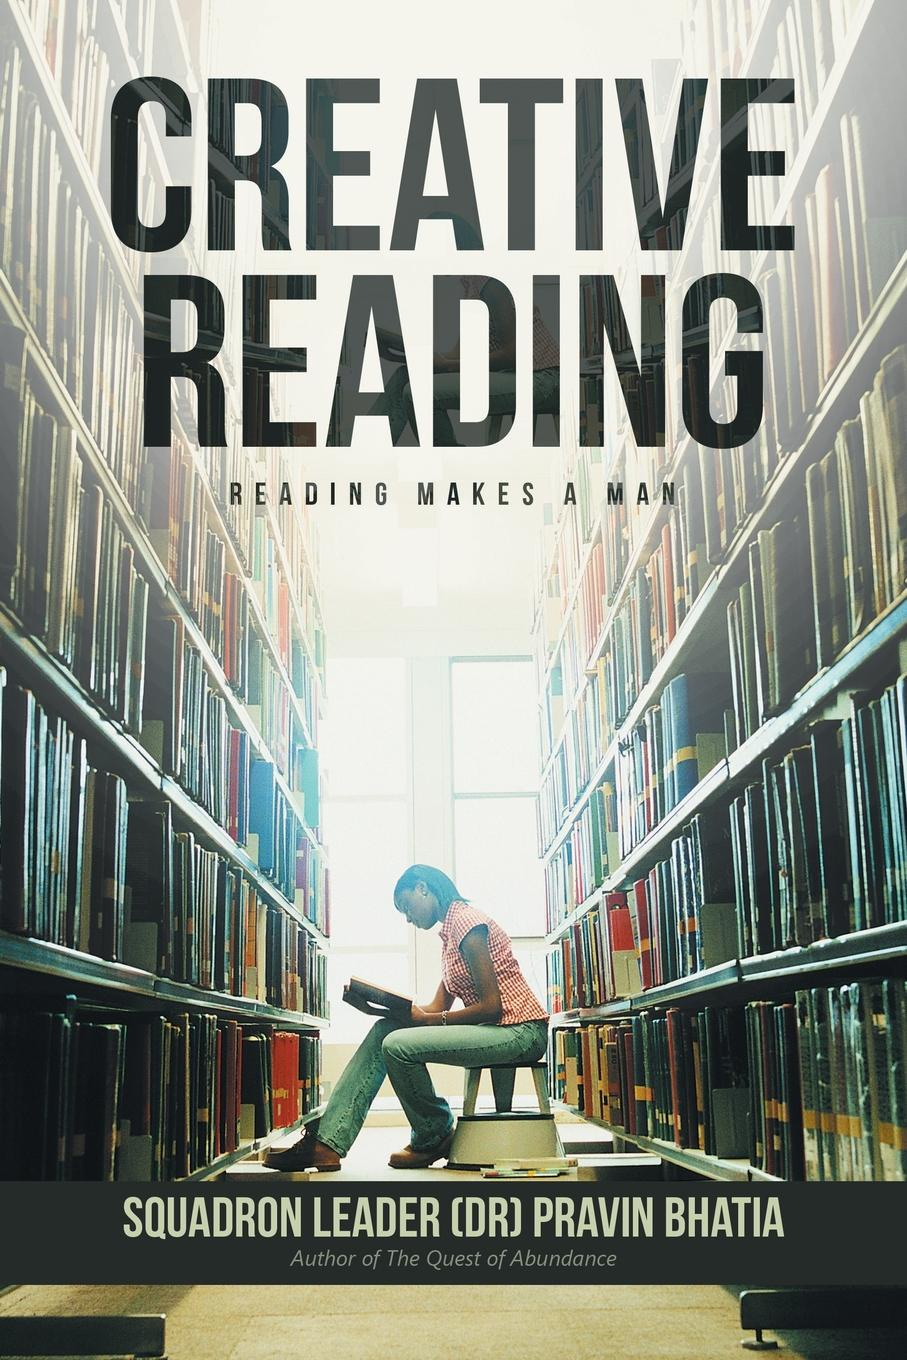 Squadron Leader (DR) Pravin Bhatia Creative Reading. Reading Makes a Man michael roberto a unlocking creativity how to solve any problem and make the best decisions by shifting creative mindsets